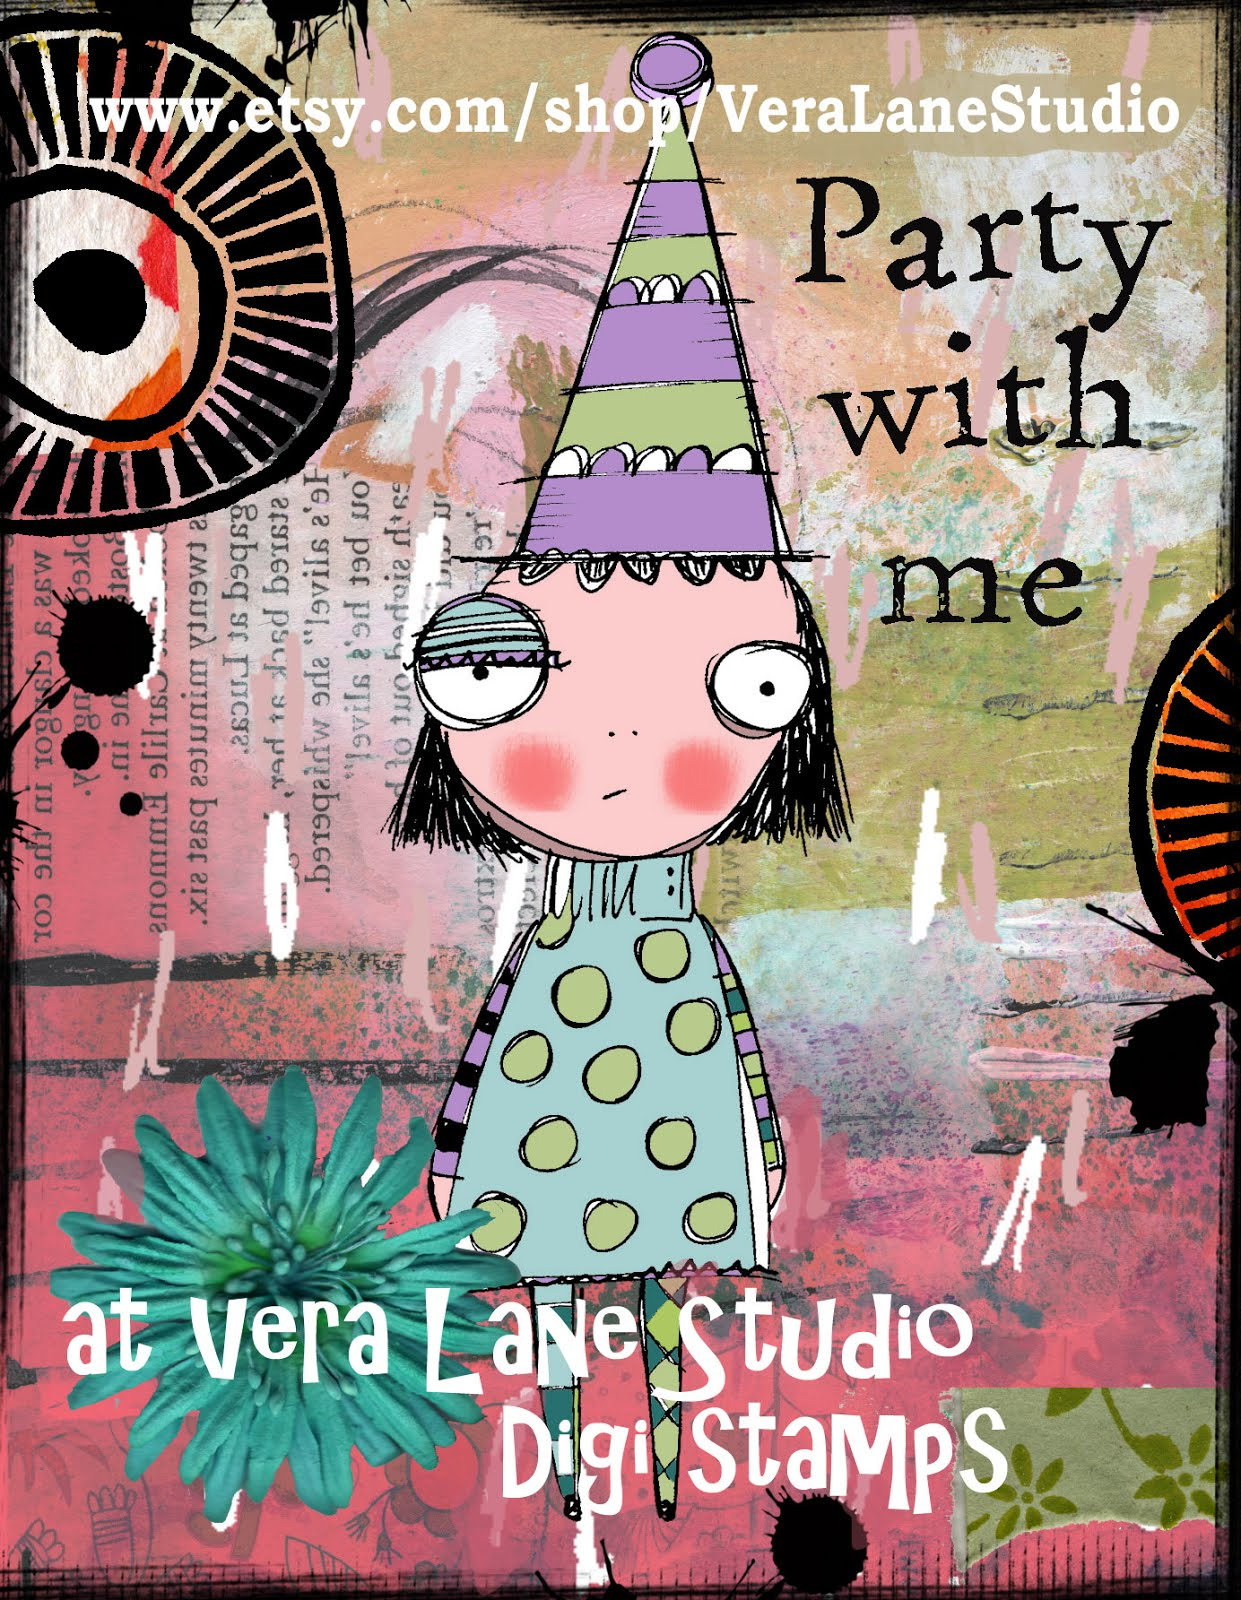 Vera Lane Studio